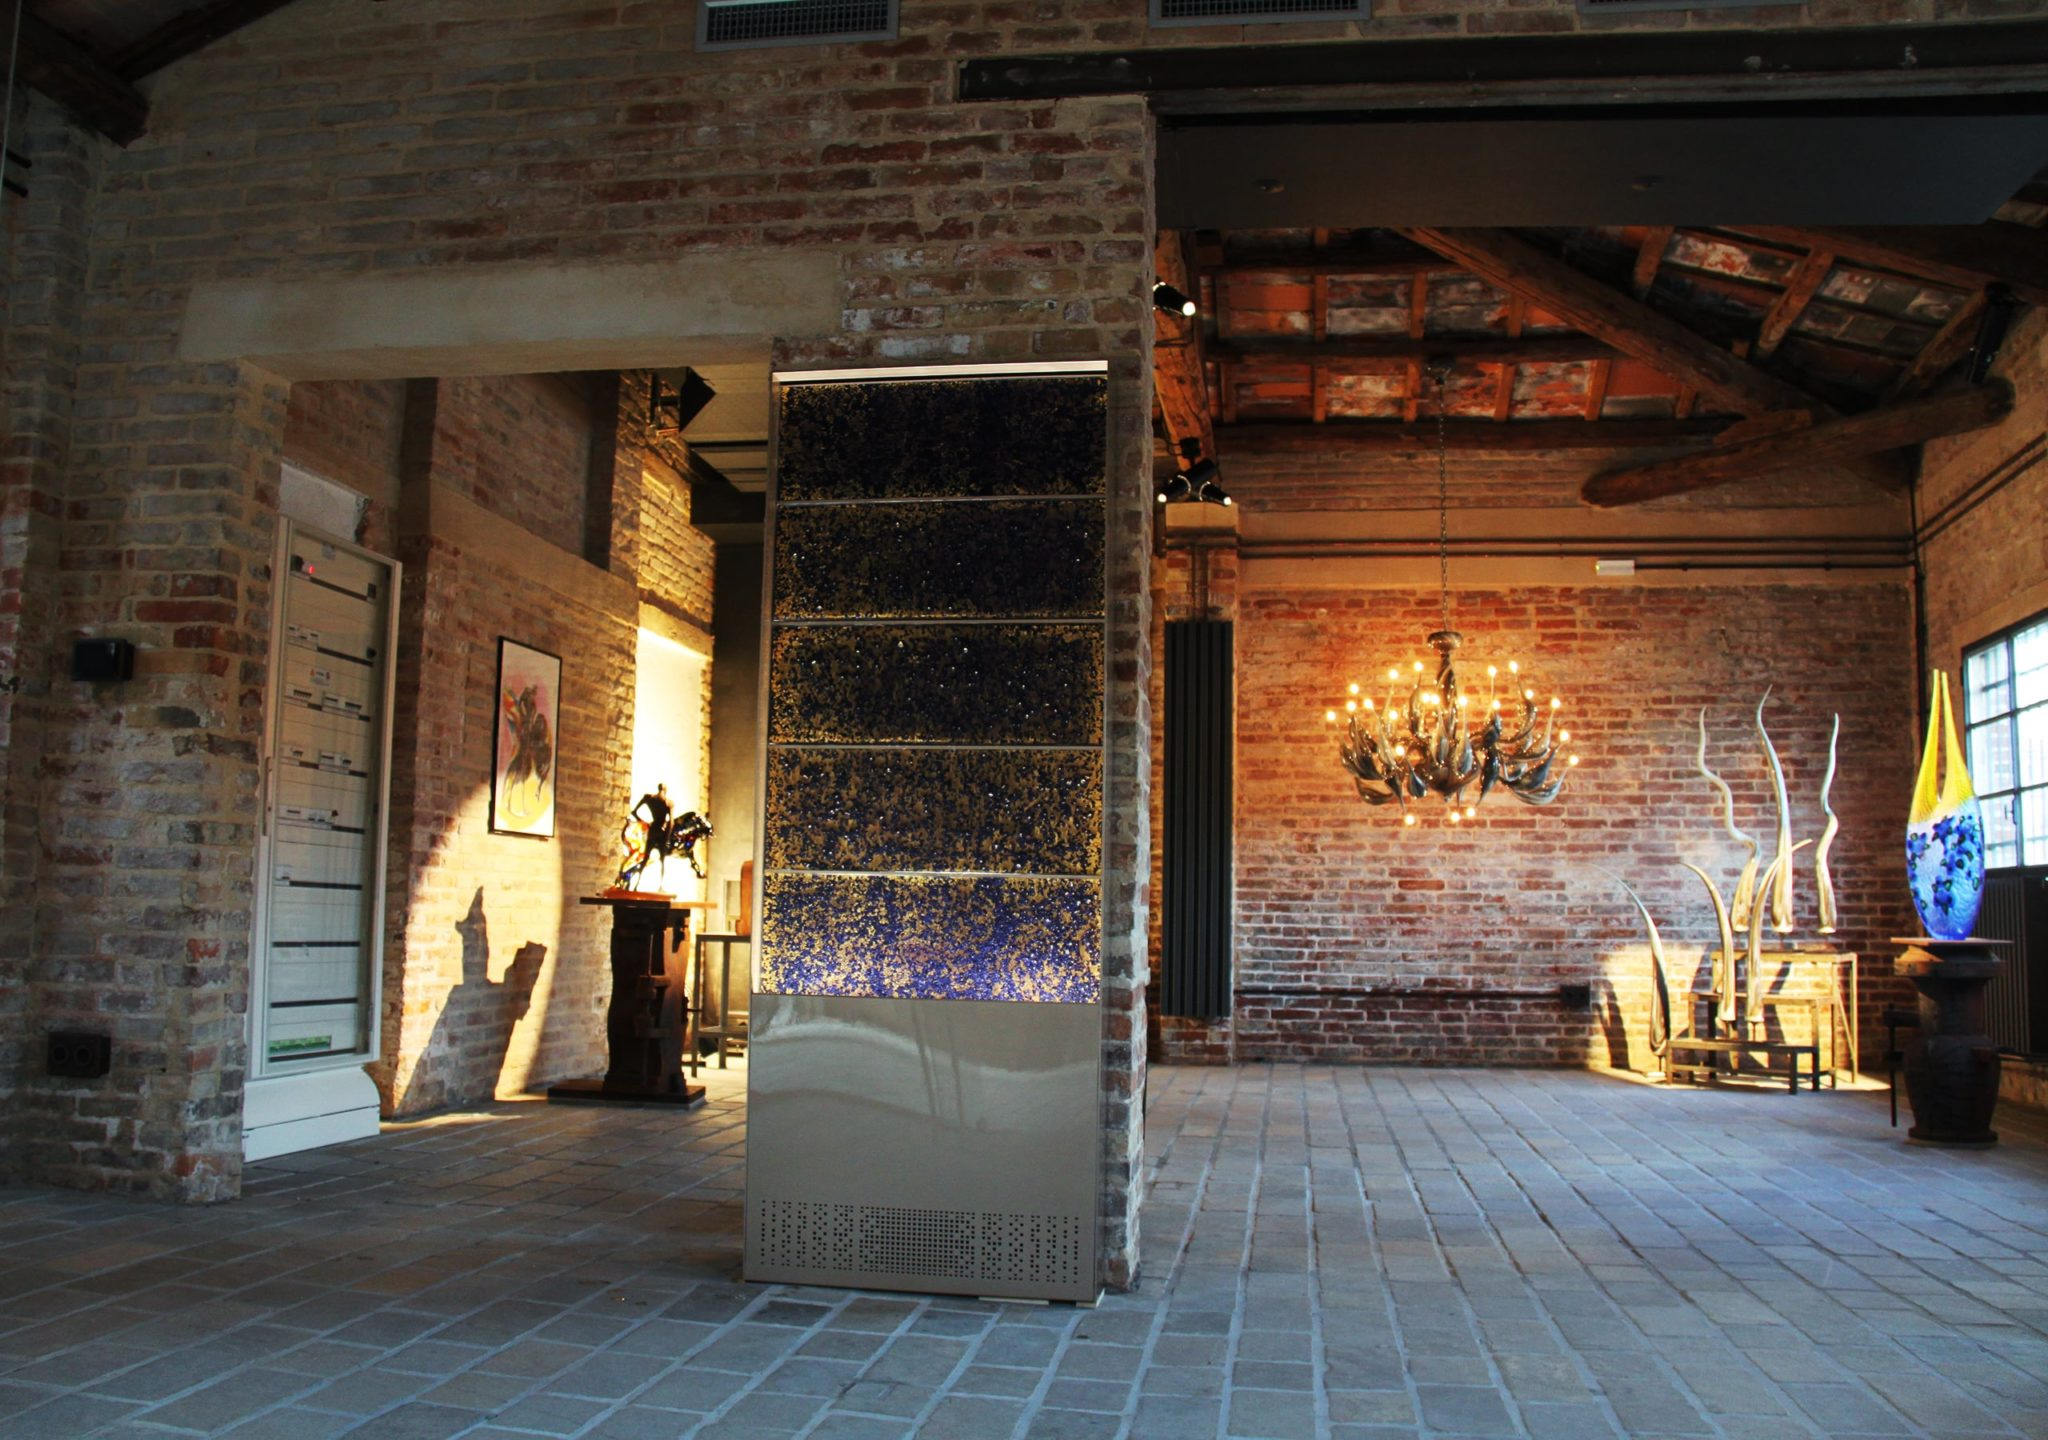 the-venice-glass-week-vetro-artistico-murano-glass-festival-Venezia